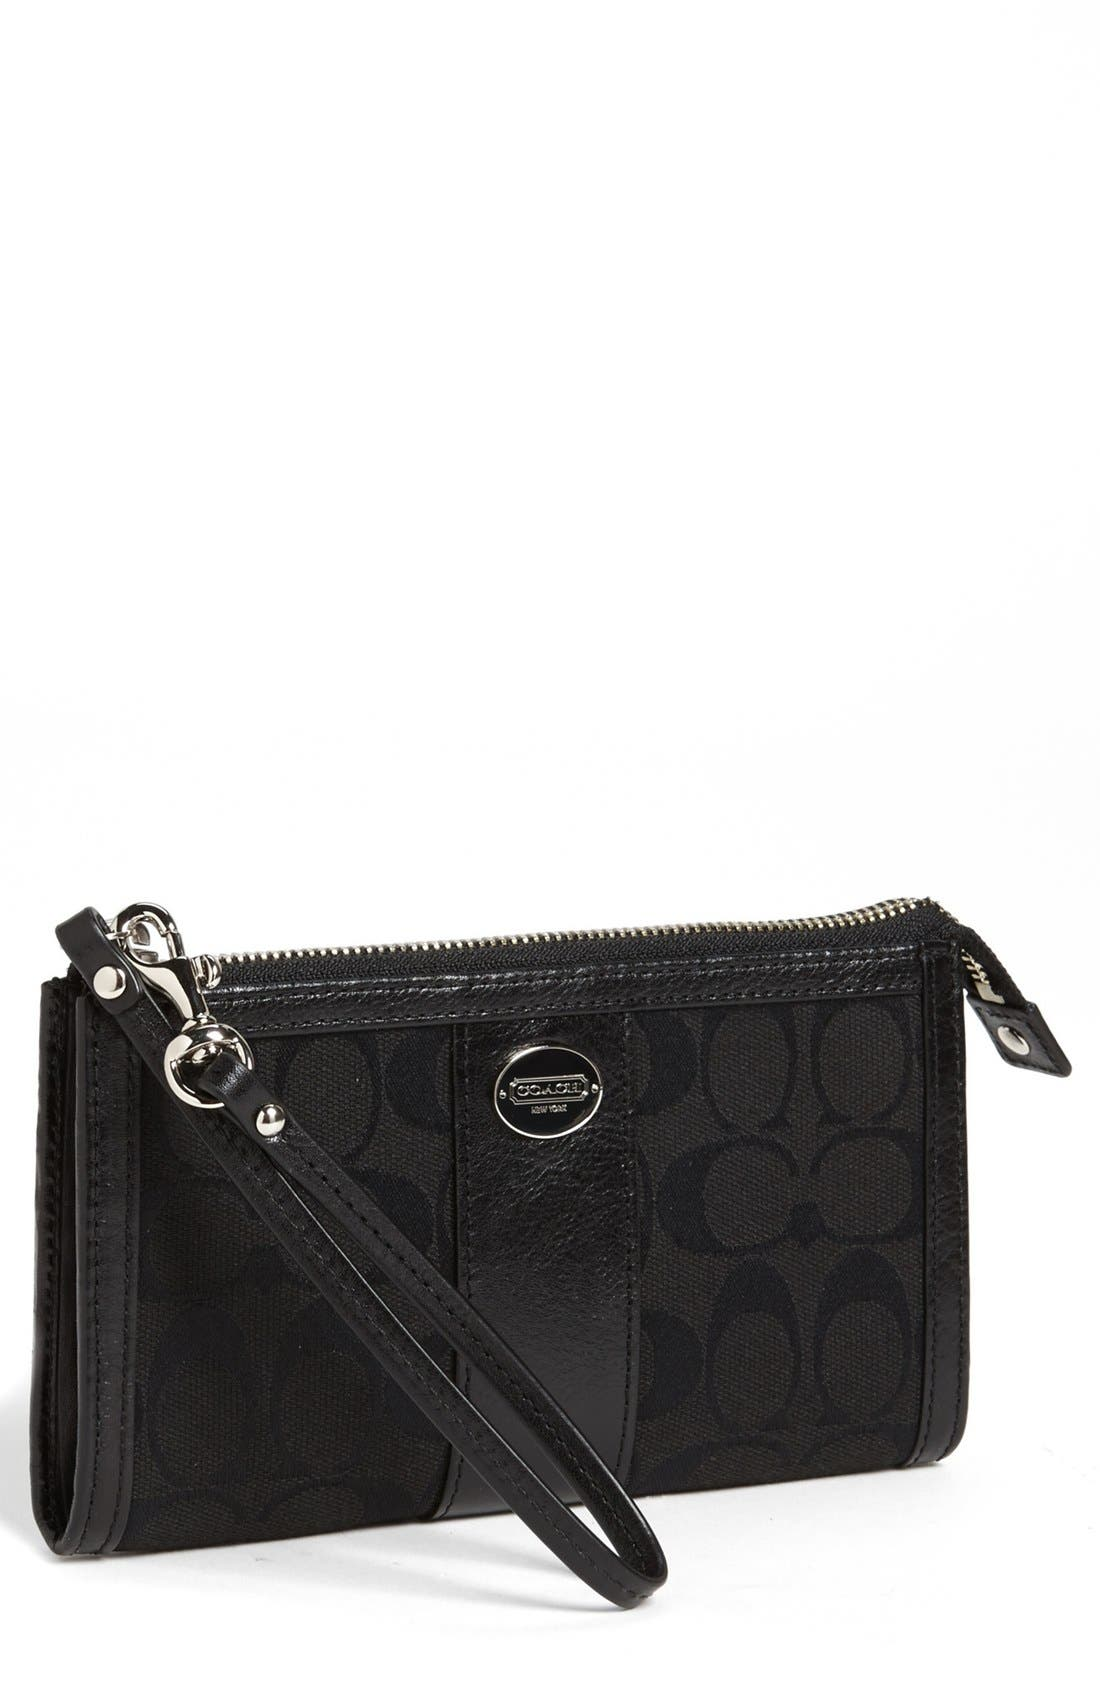 Alternate Image 1 Selected - COACH 'Signature - Zippy' Wallet